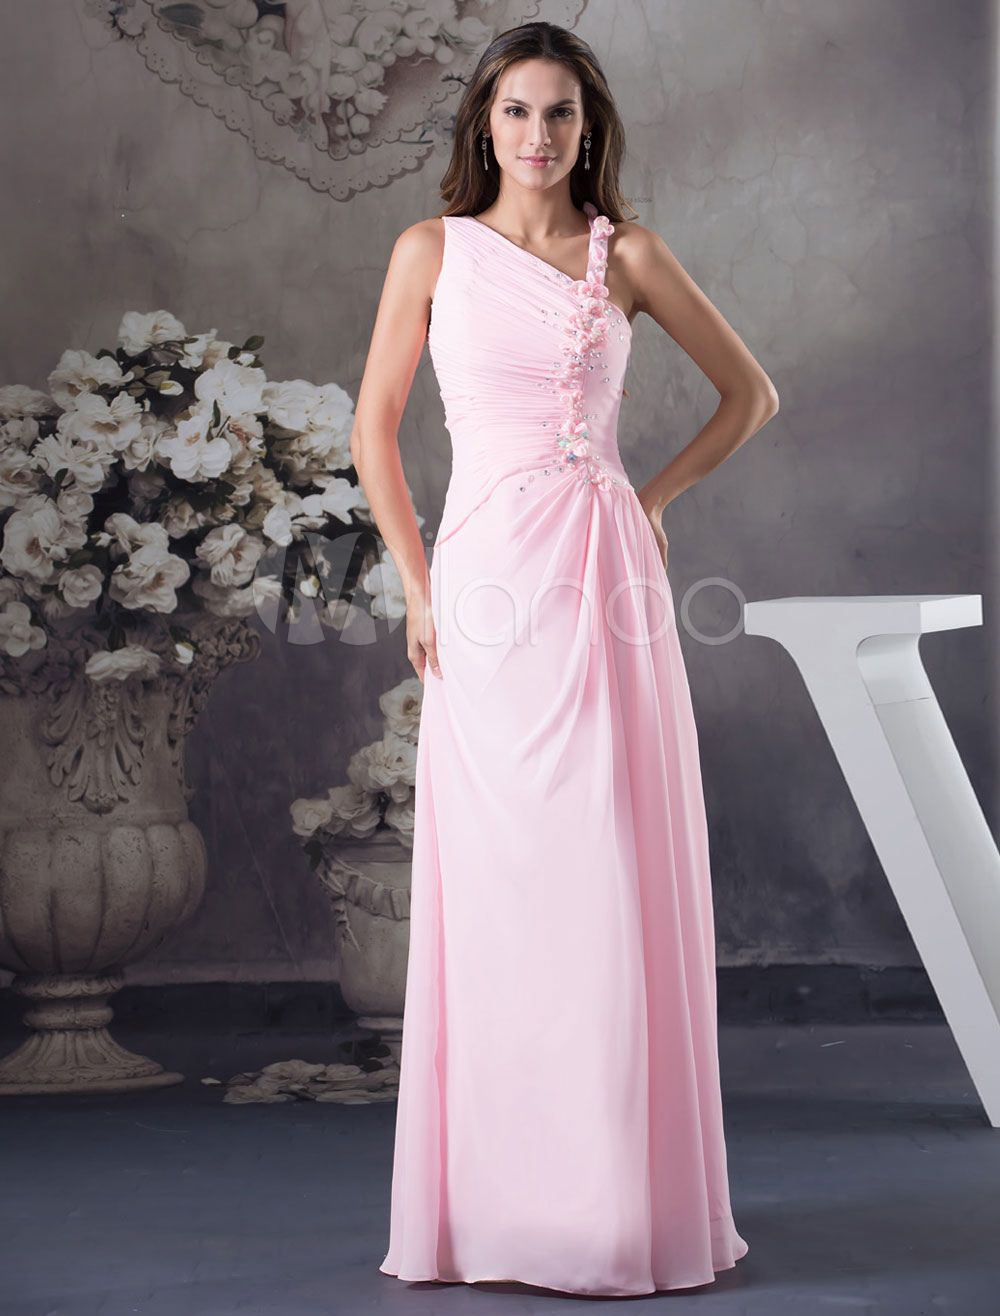 dd19759b4dd2 Beading Prom Dress Pleated One-Shoulder Floor-Length A-Line Chiffon  Graduation Dress